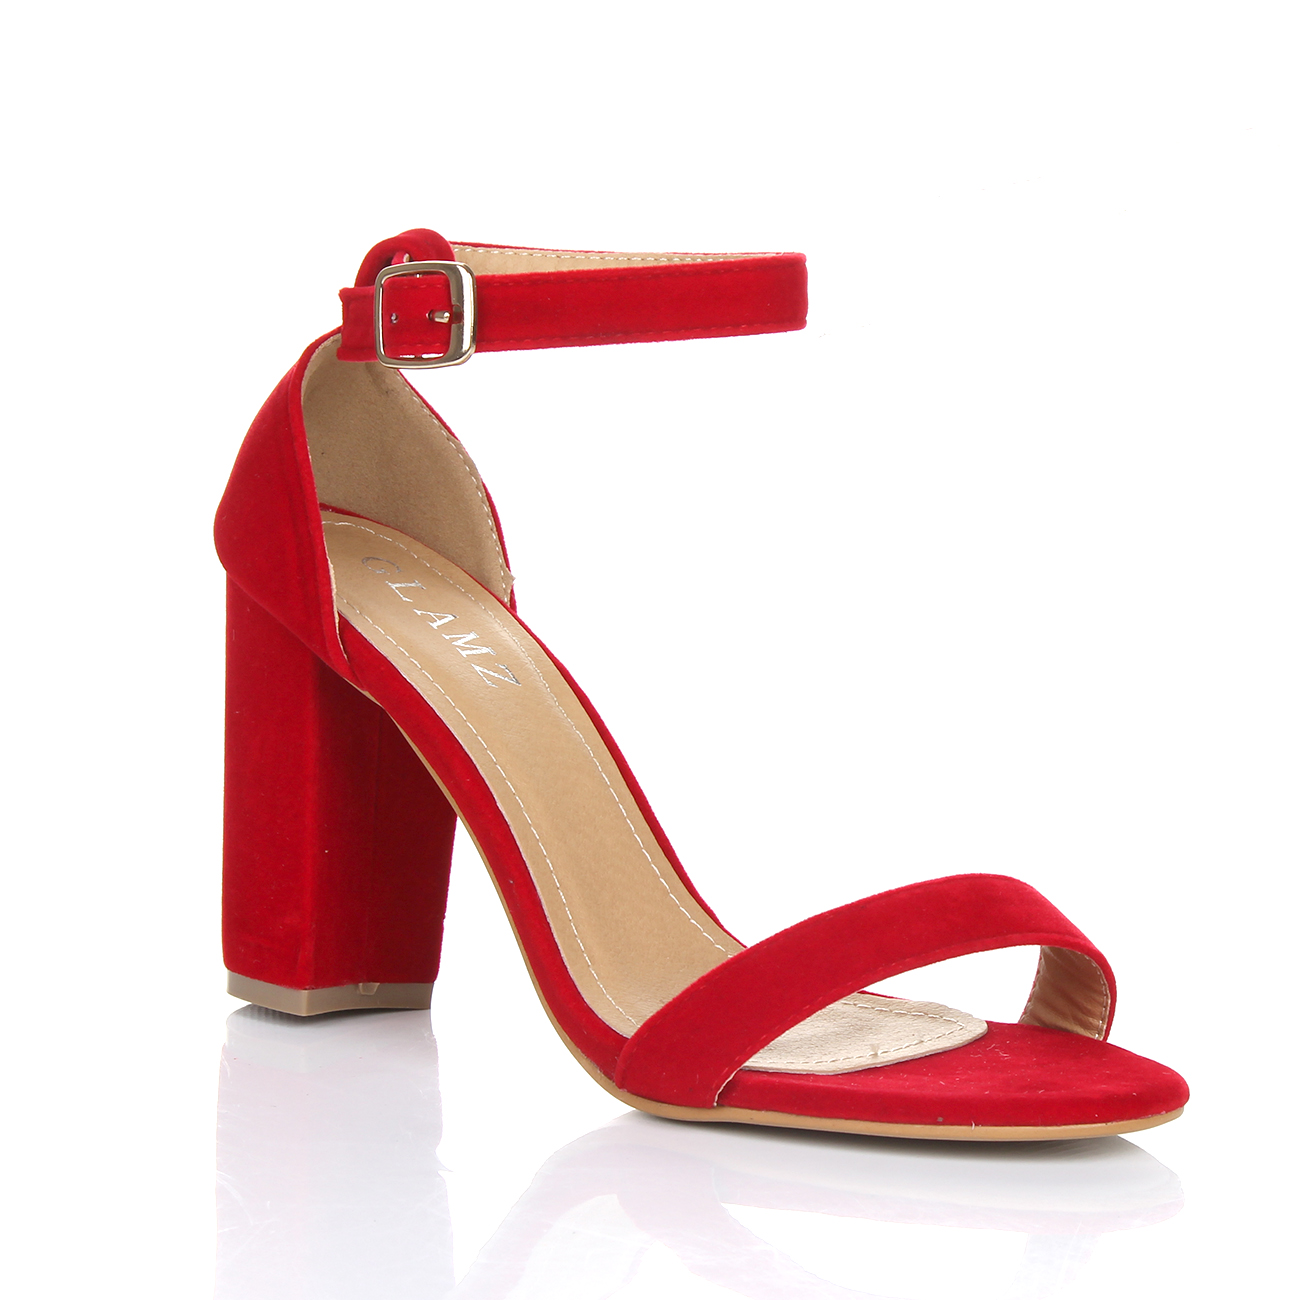 Womens Shoes Online Uk